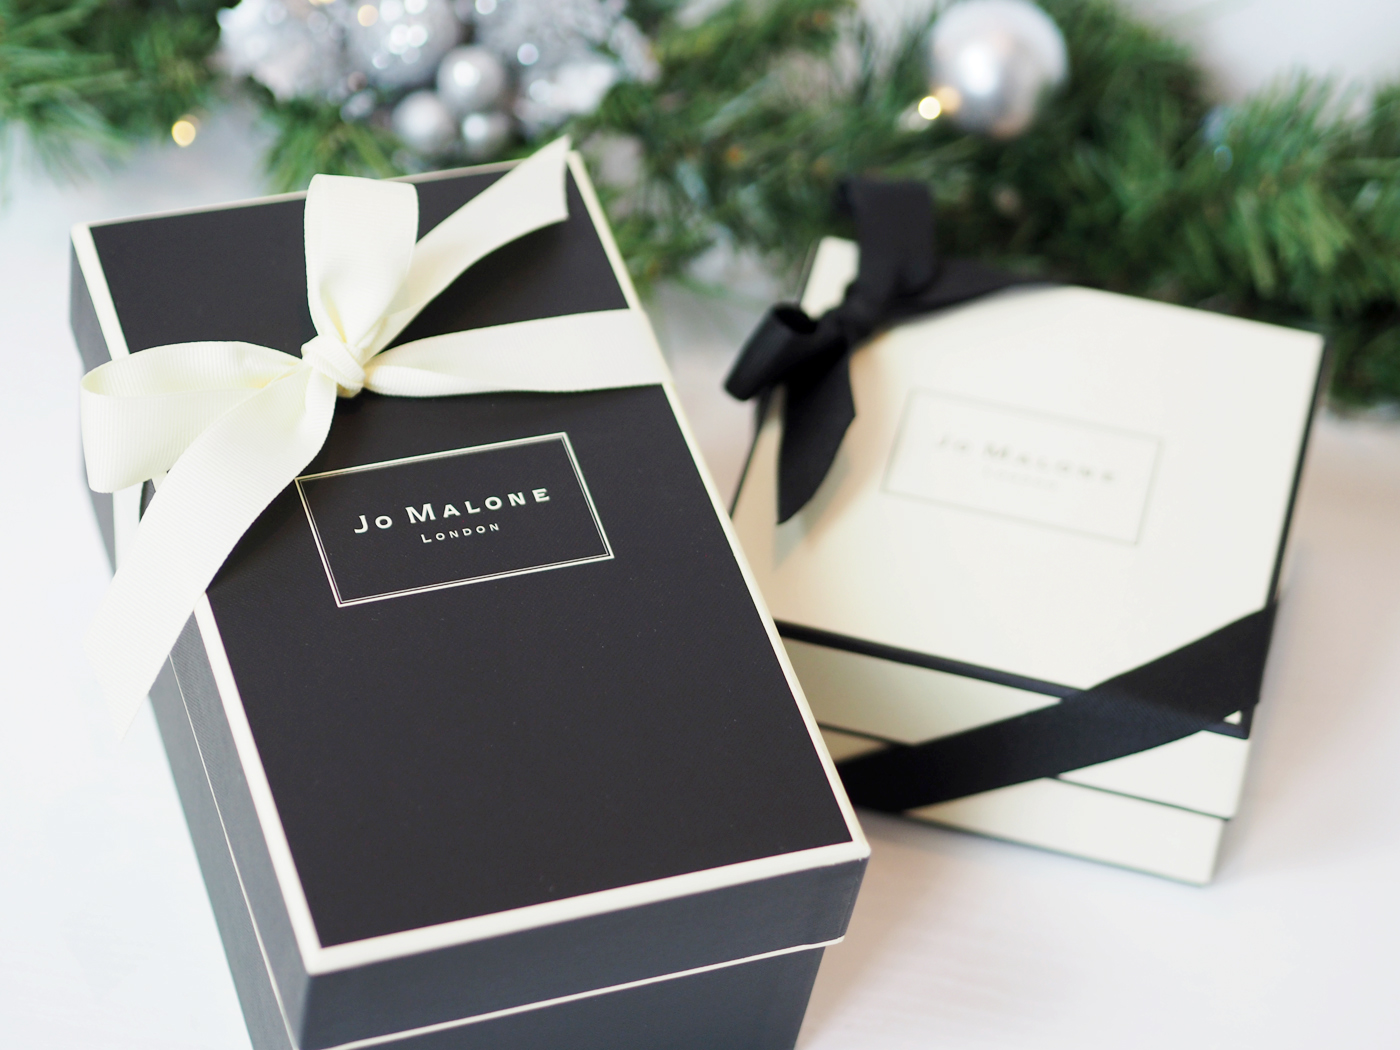 aldi s jo malone rivalling candles are now available as christmas gift sets 4